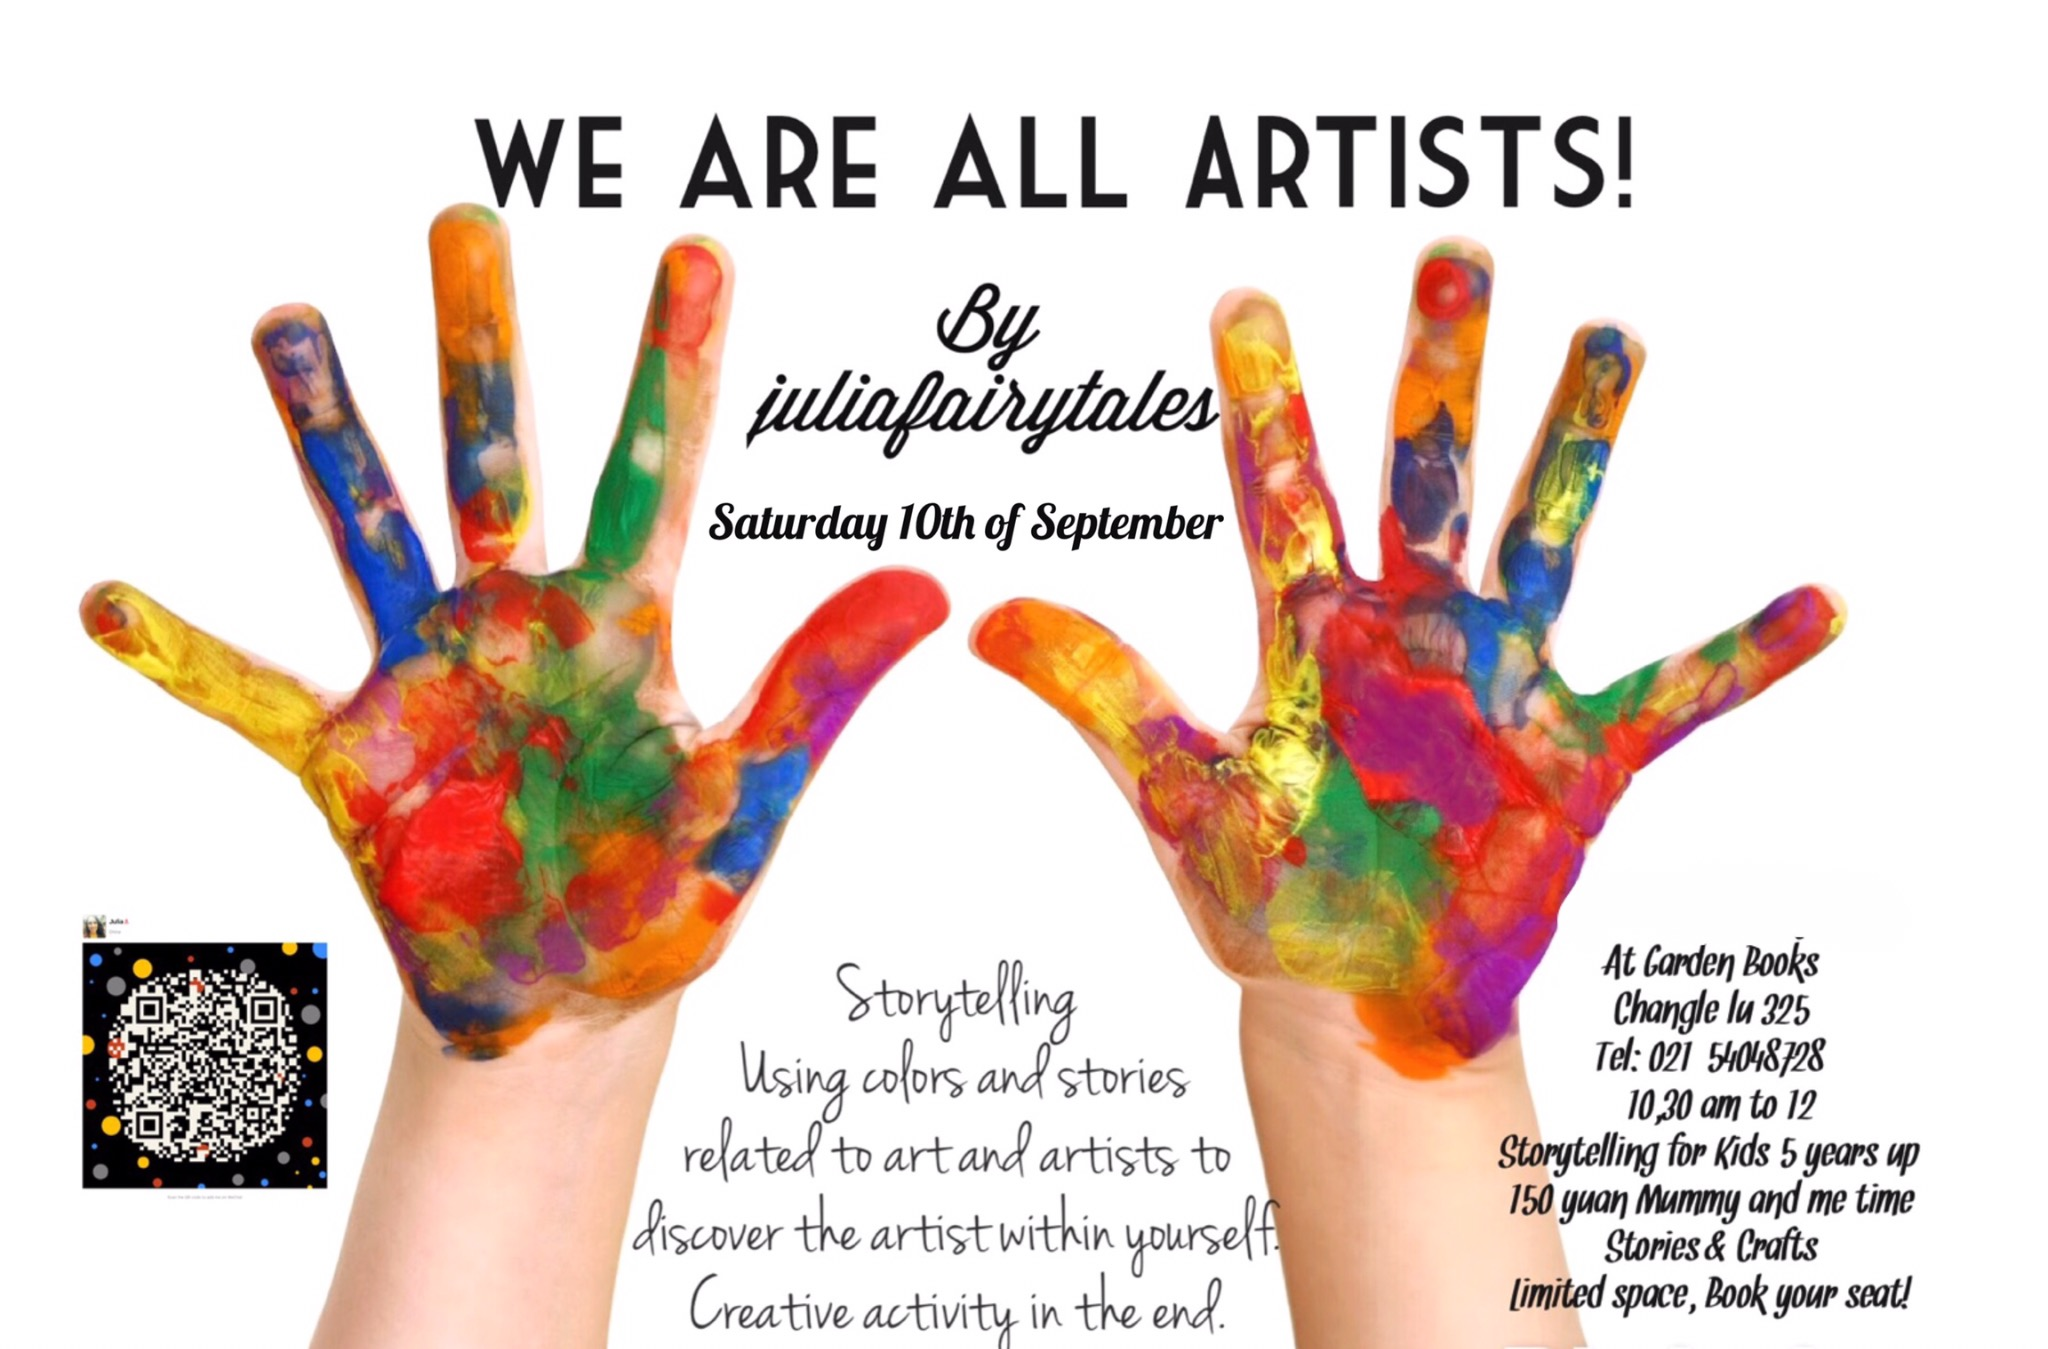 Sep 10: We Are All Artists